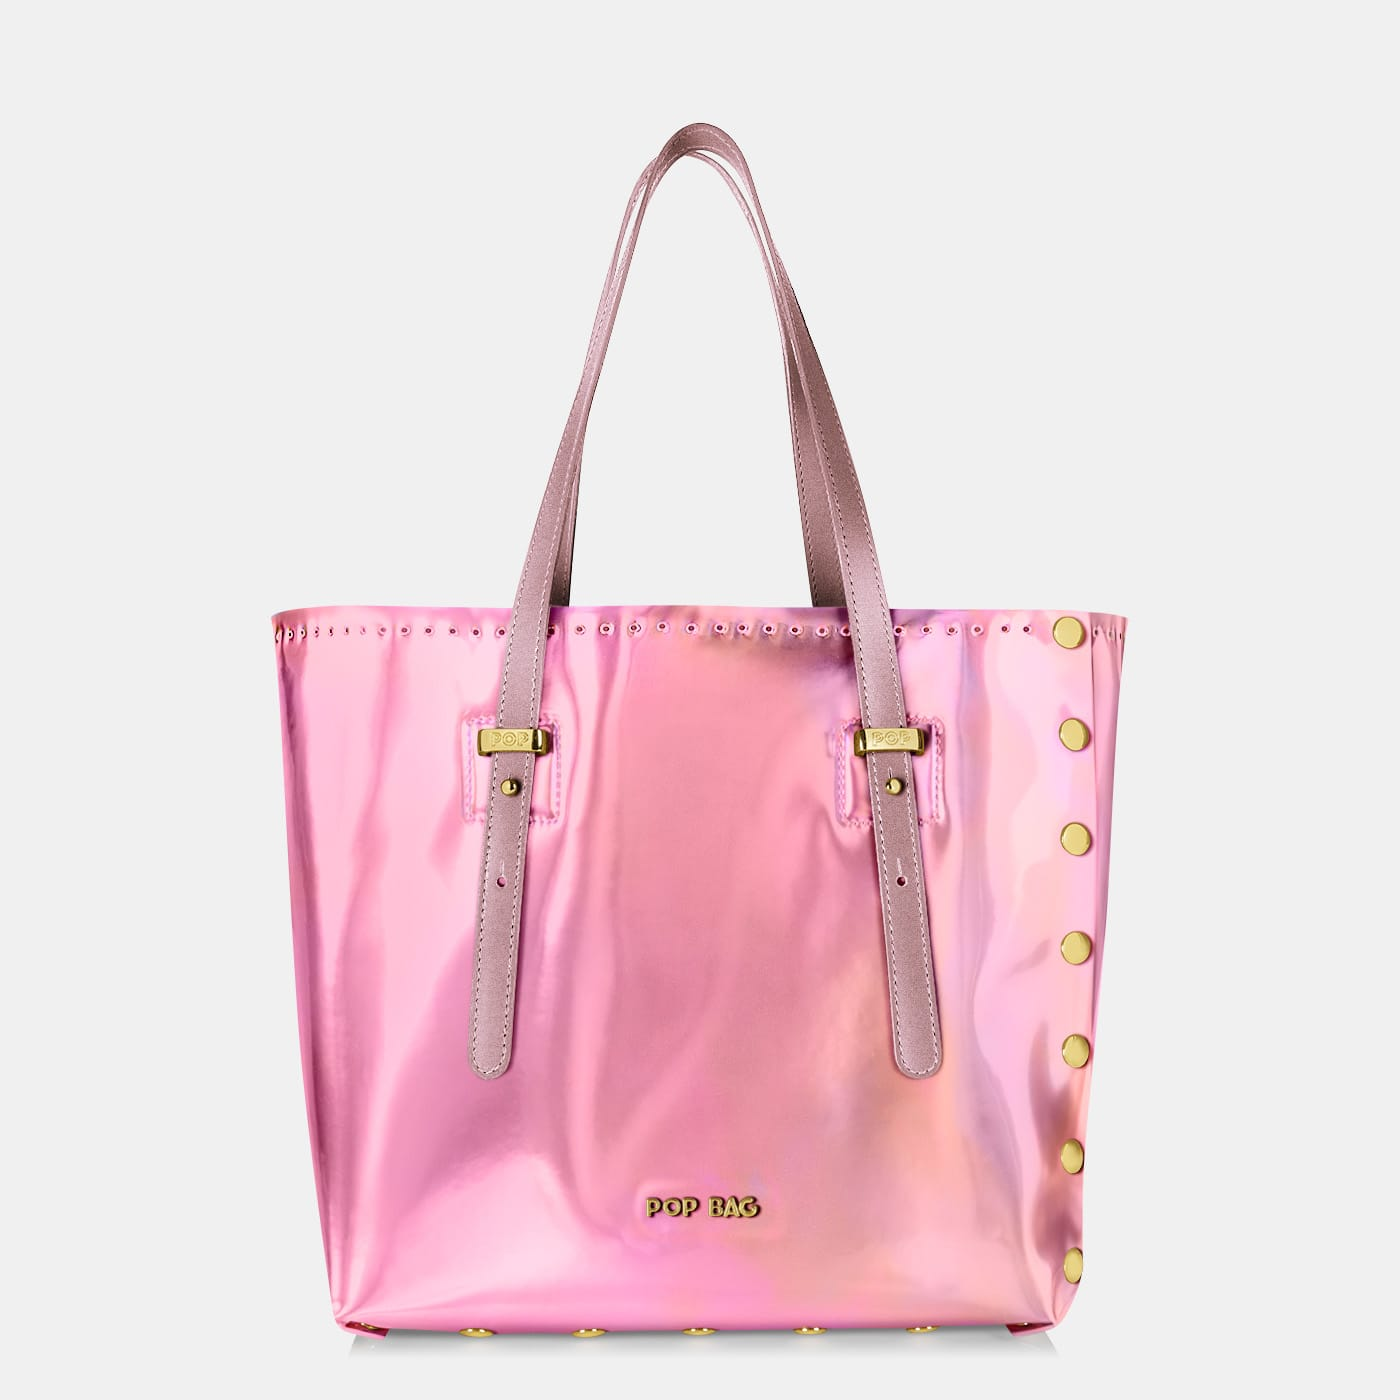 Pop Aurora Bag - Pink Iridescent - Medium